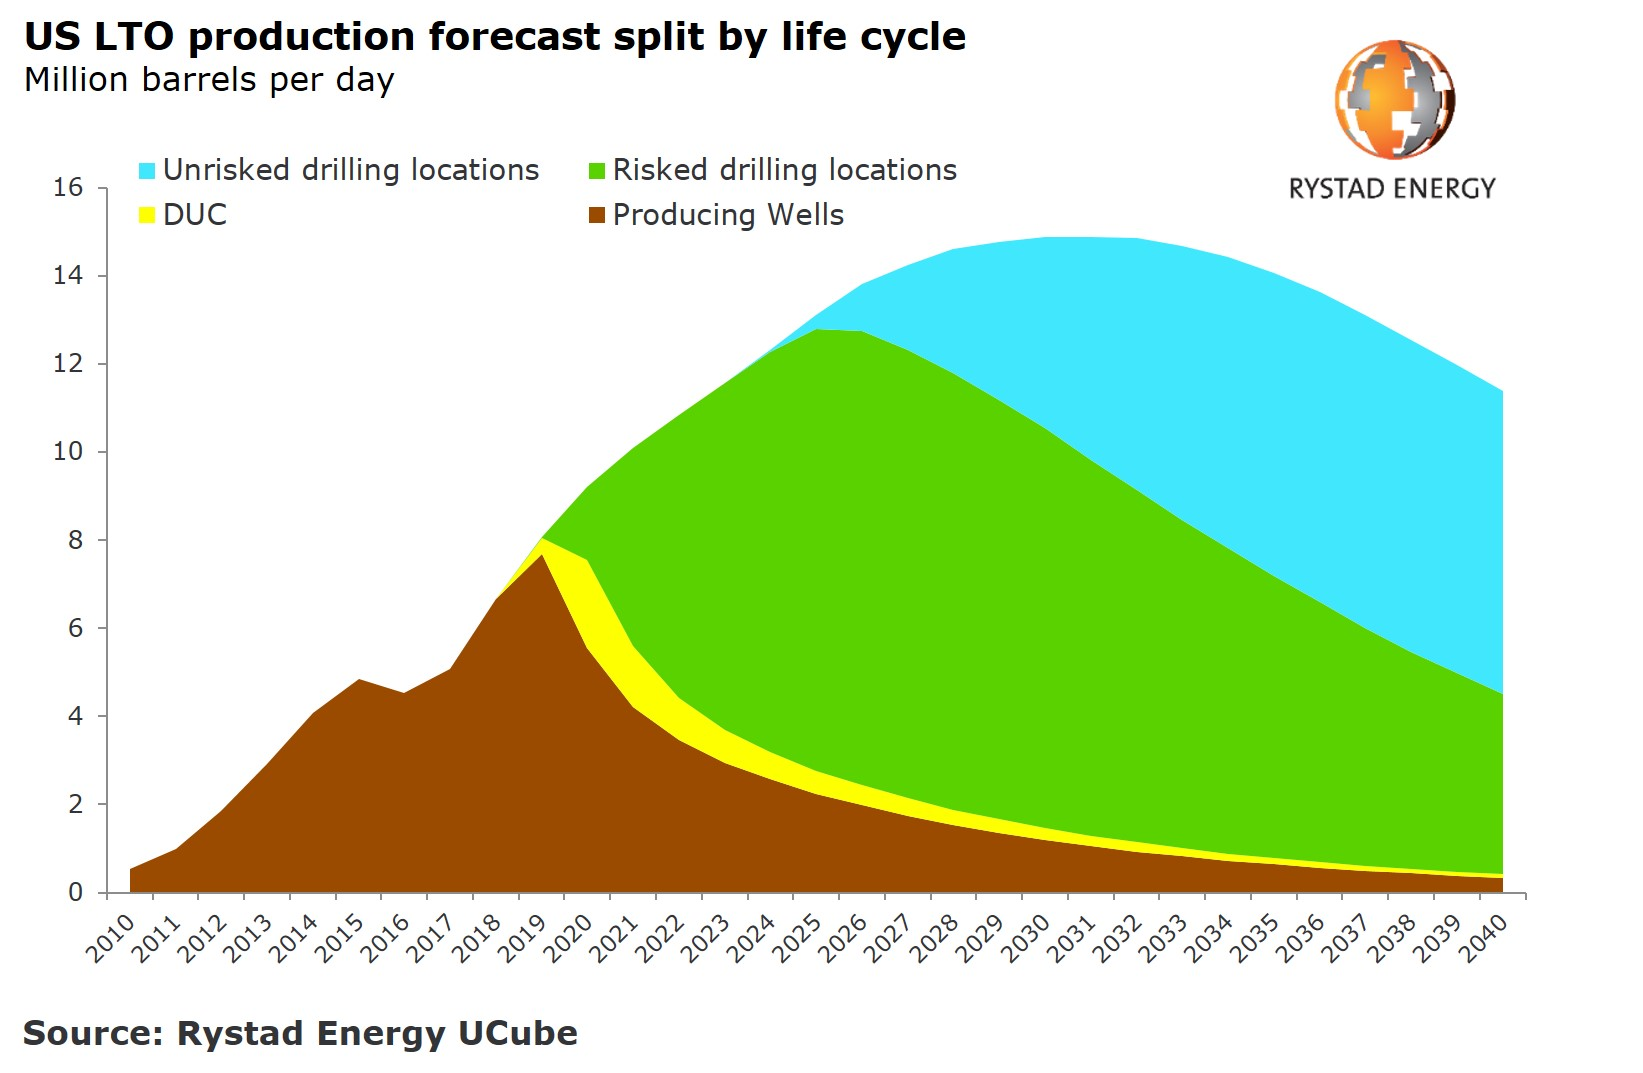 US LTO production forecast split by life cycle Rystad Energy